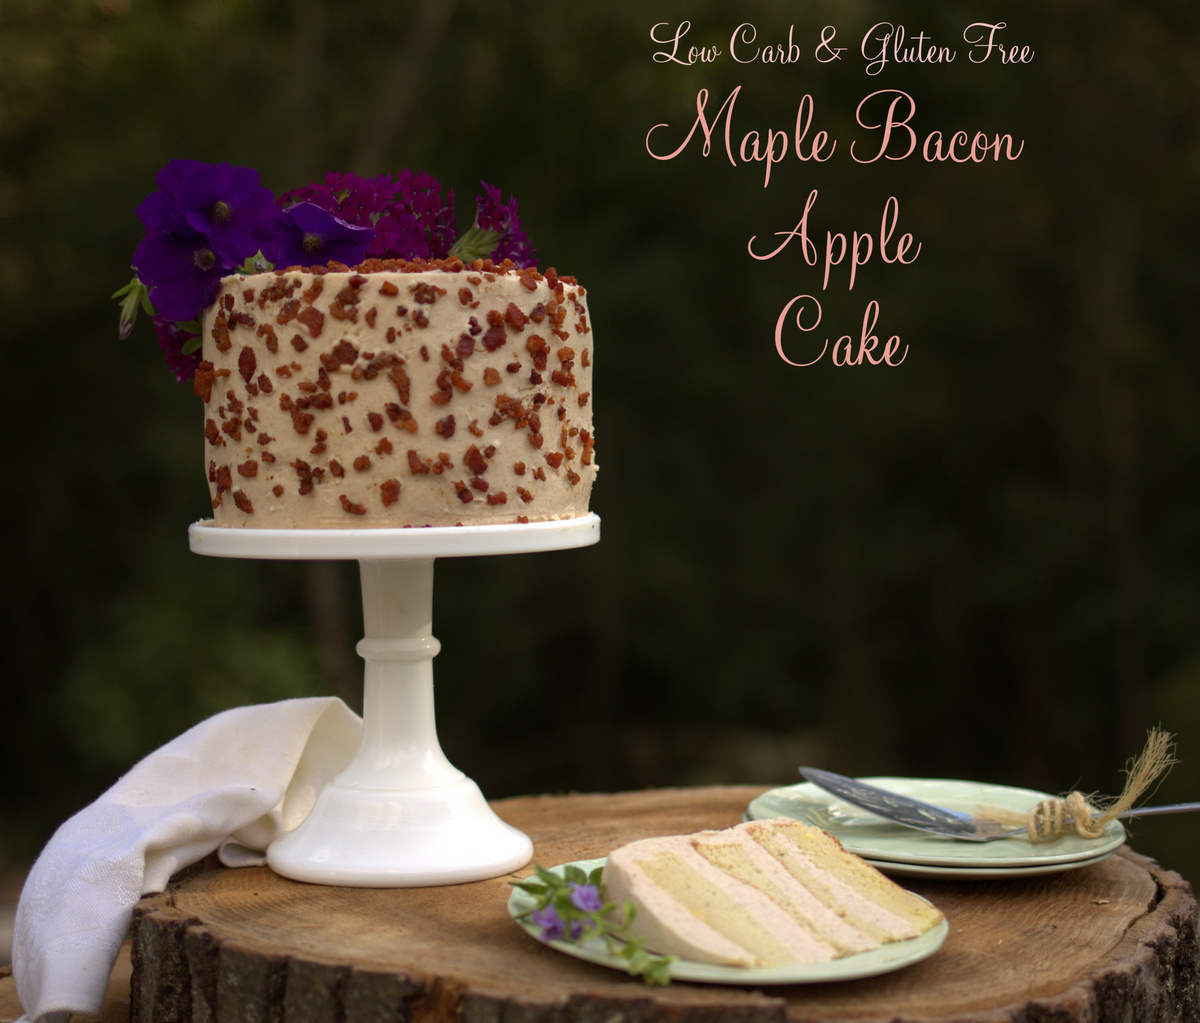 Maple Bacon Apple Cake